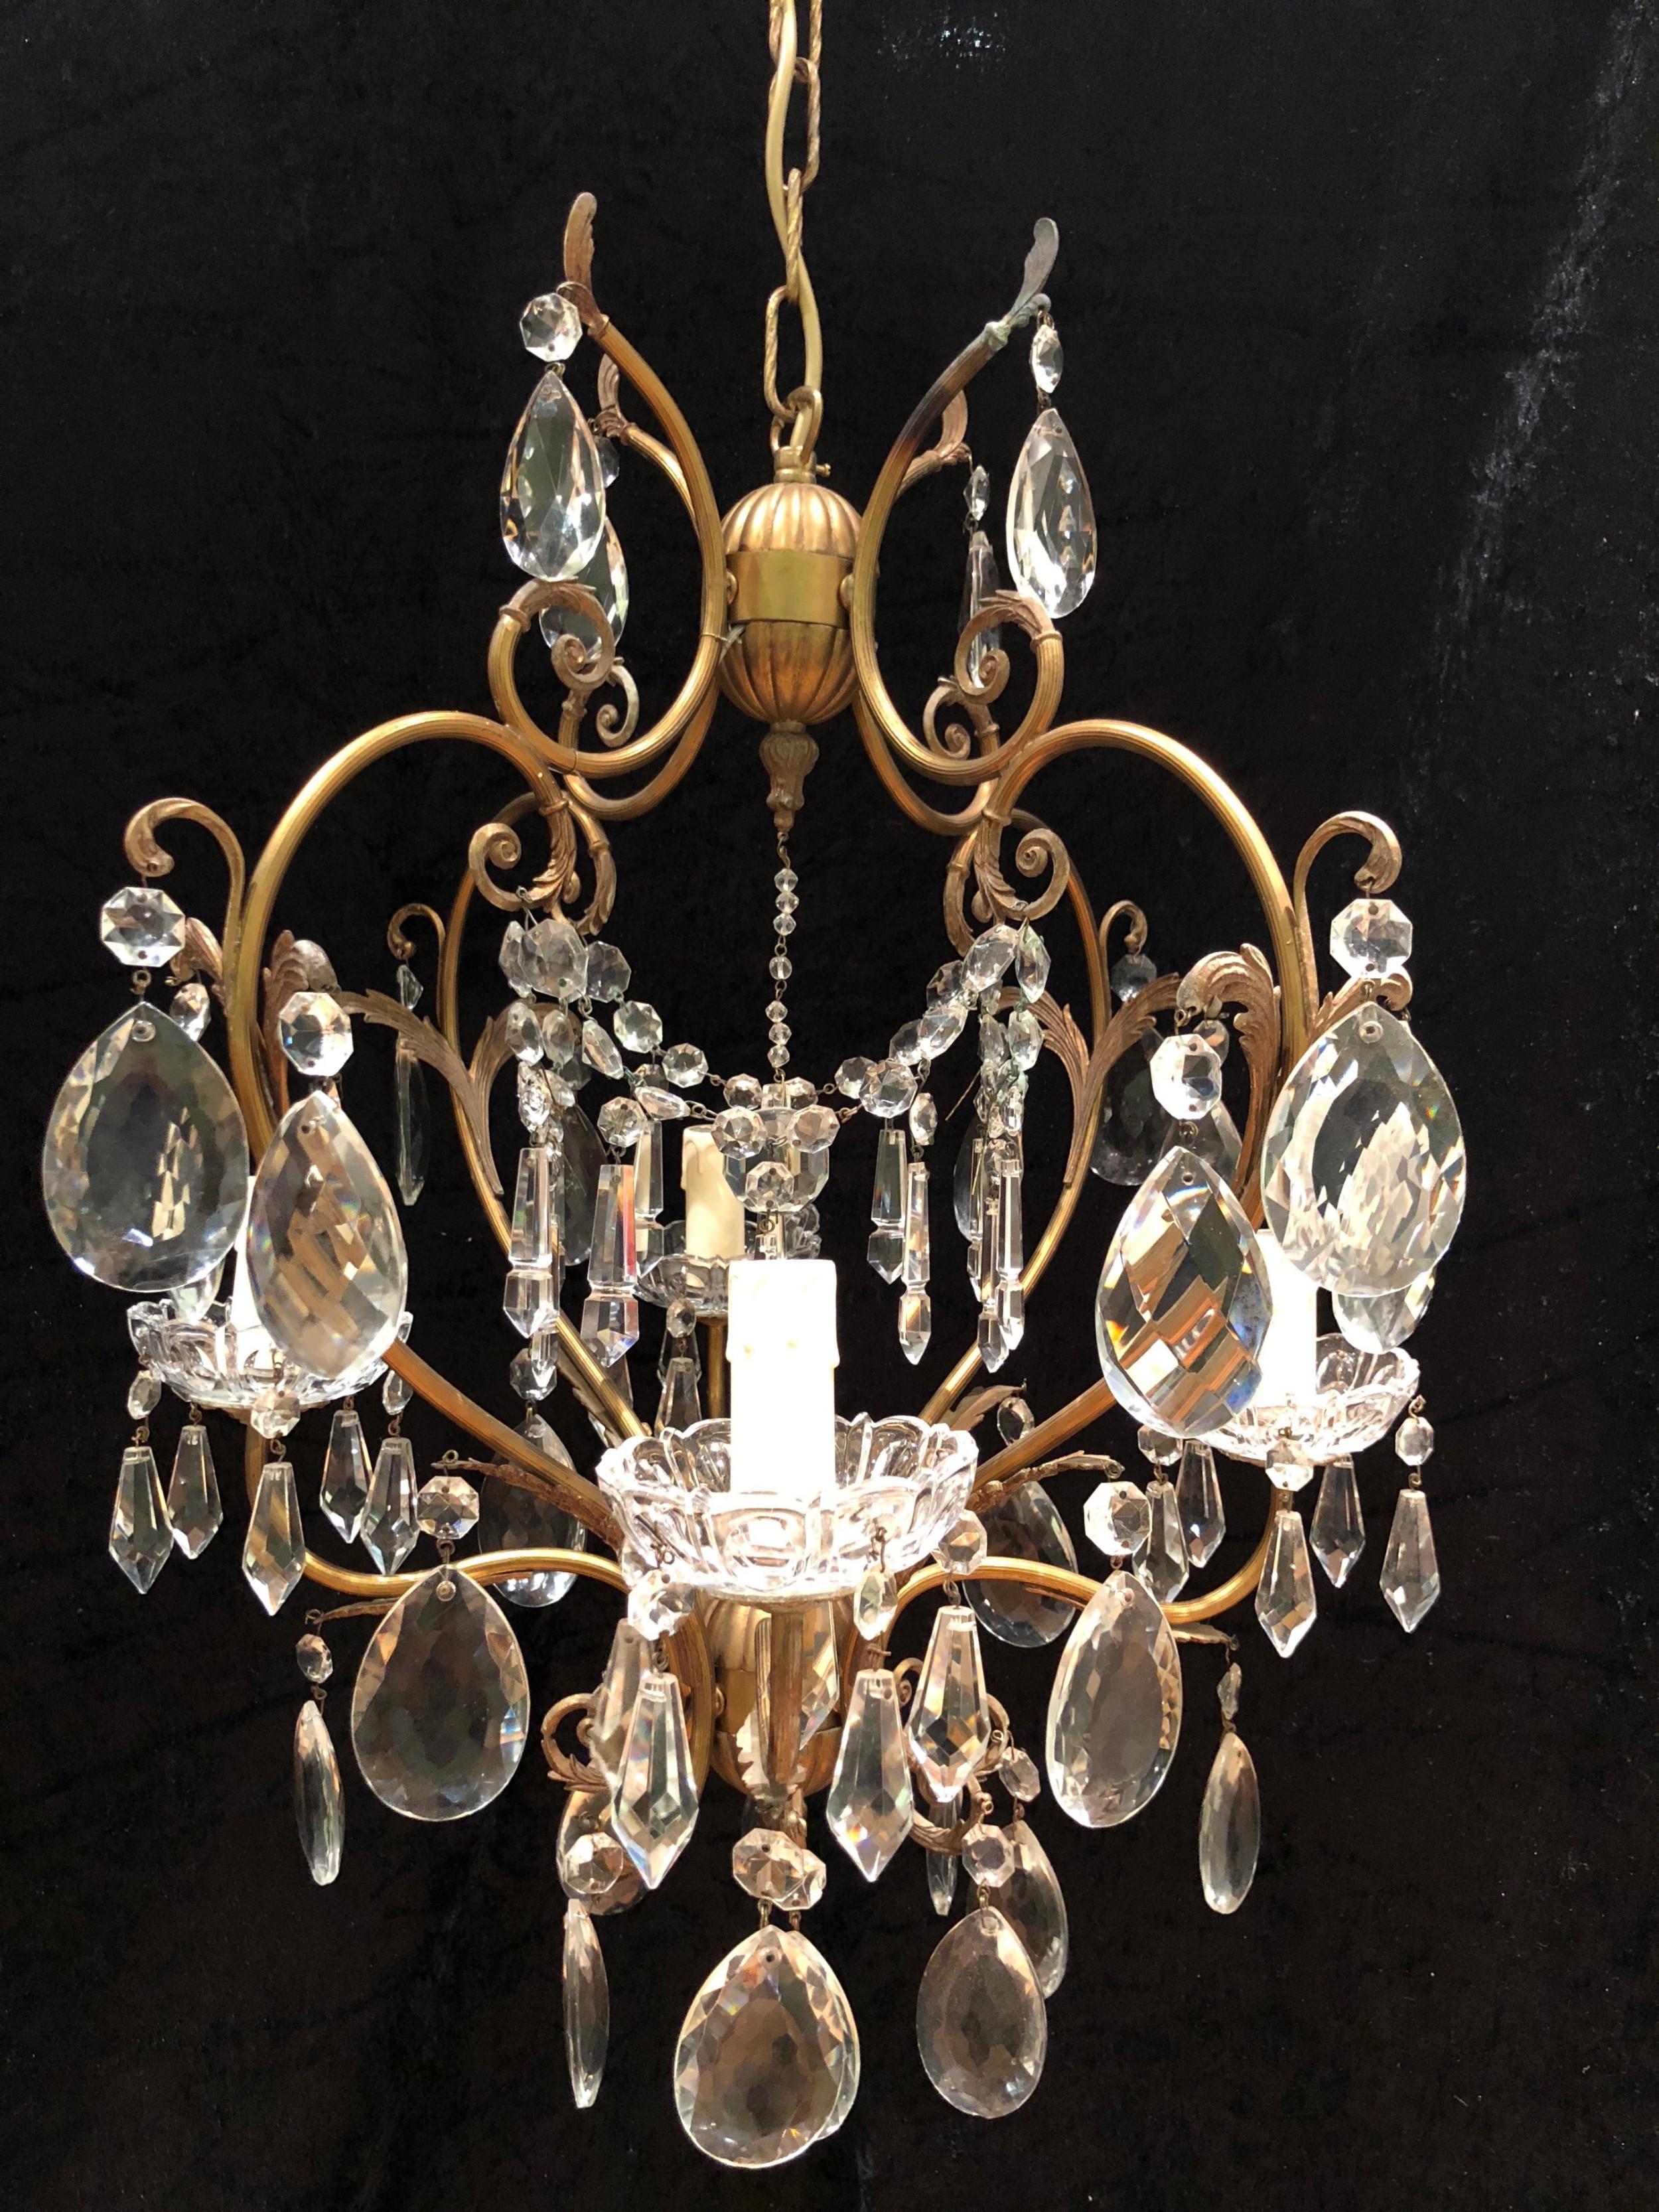 Small italian antique chandelier 515166 sellingantiques small italian antique chandelier arubaitofo Images